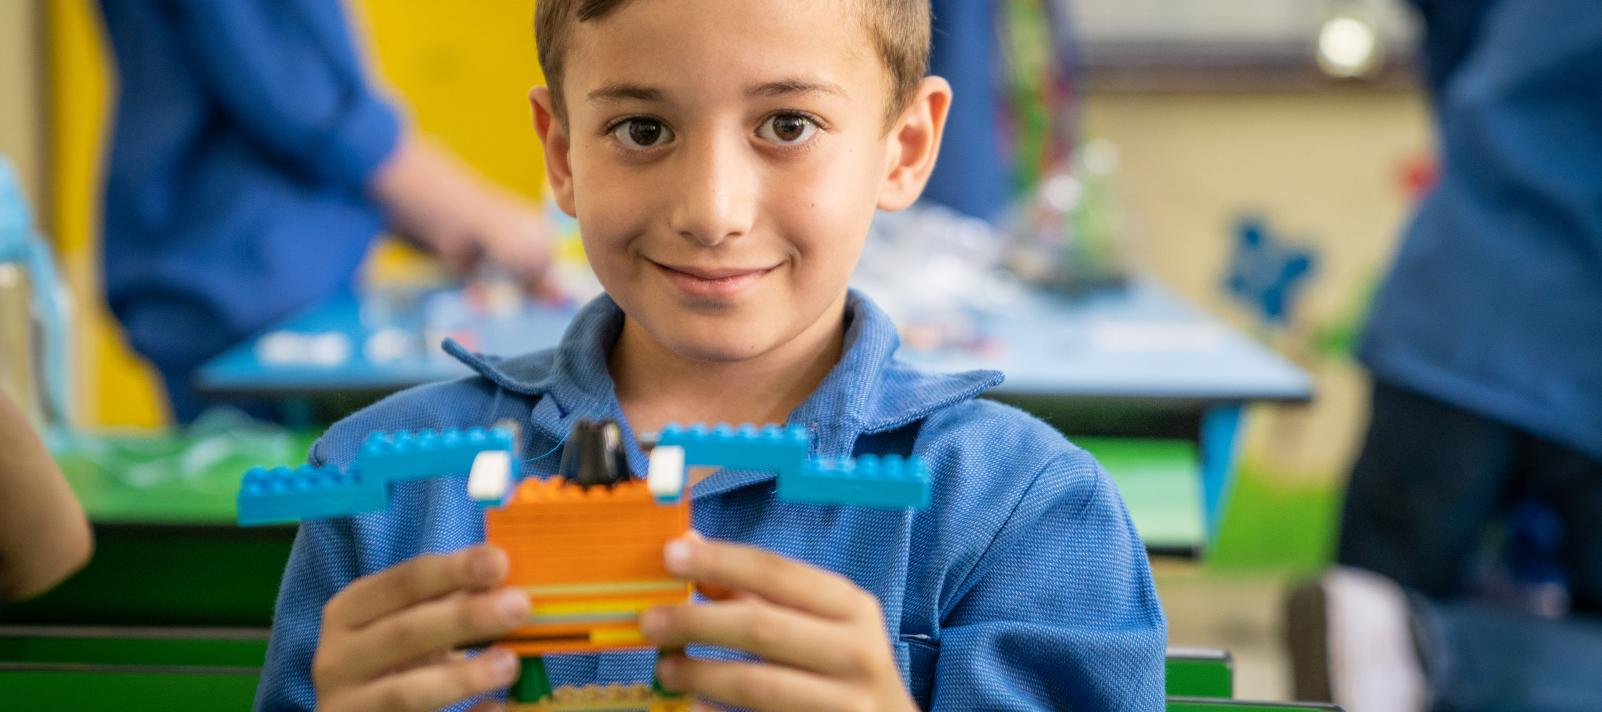 A boy holds his LEGO bricks creation in school